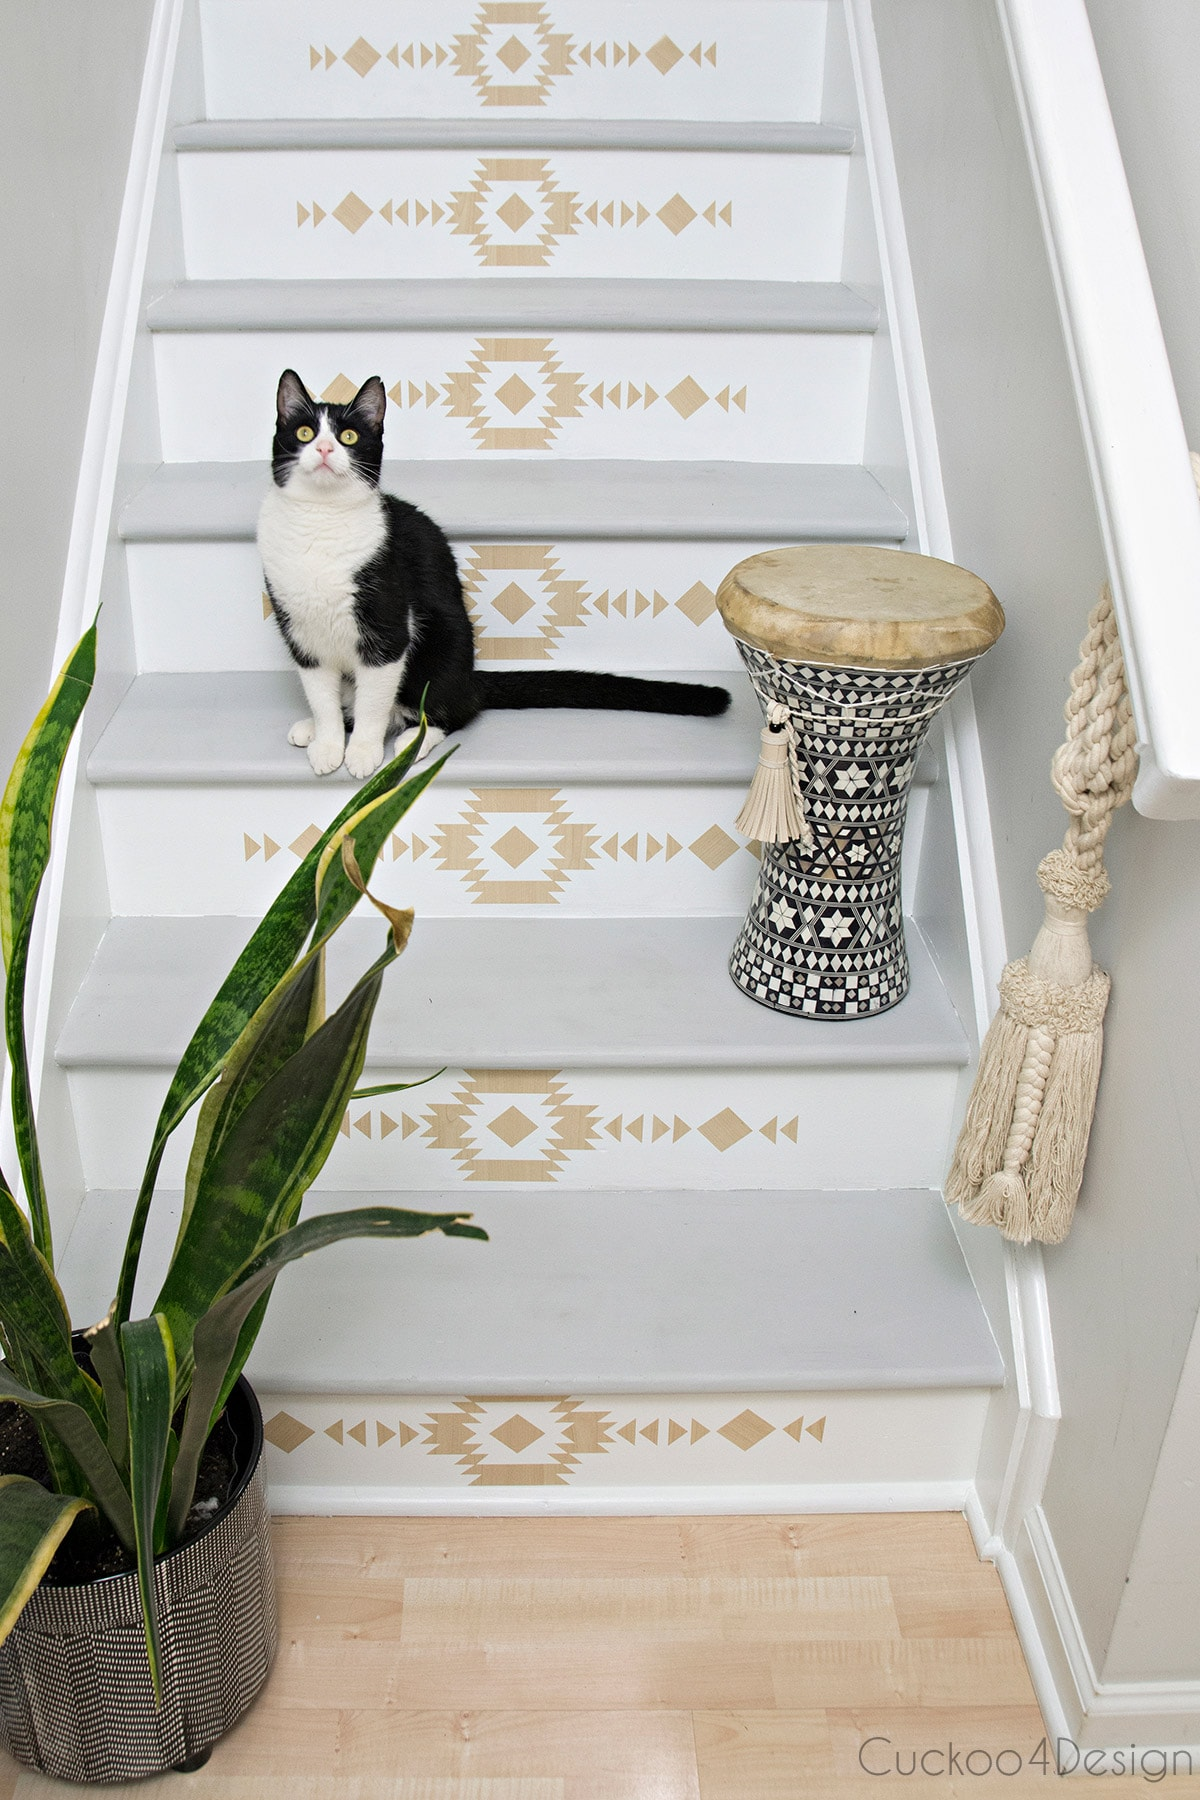 finished staircase makeover with self-adhesive vinyl stair riser decals